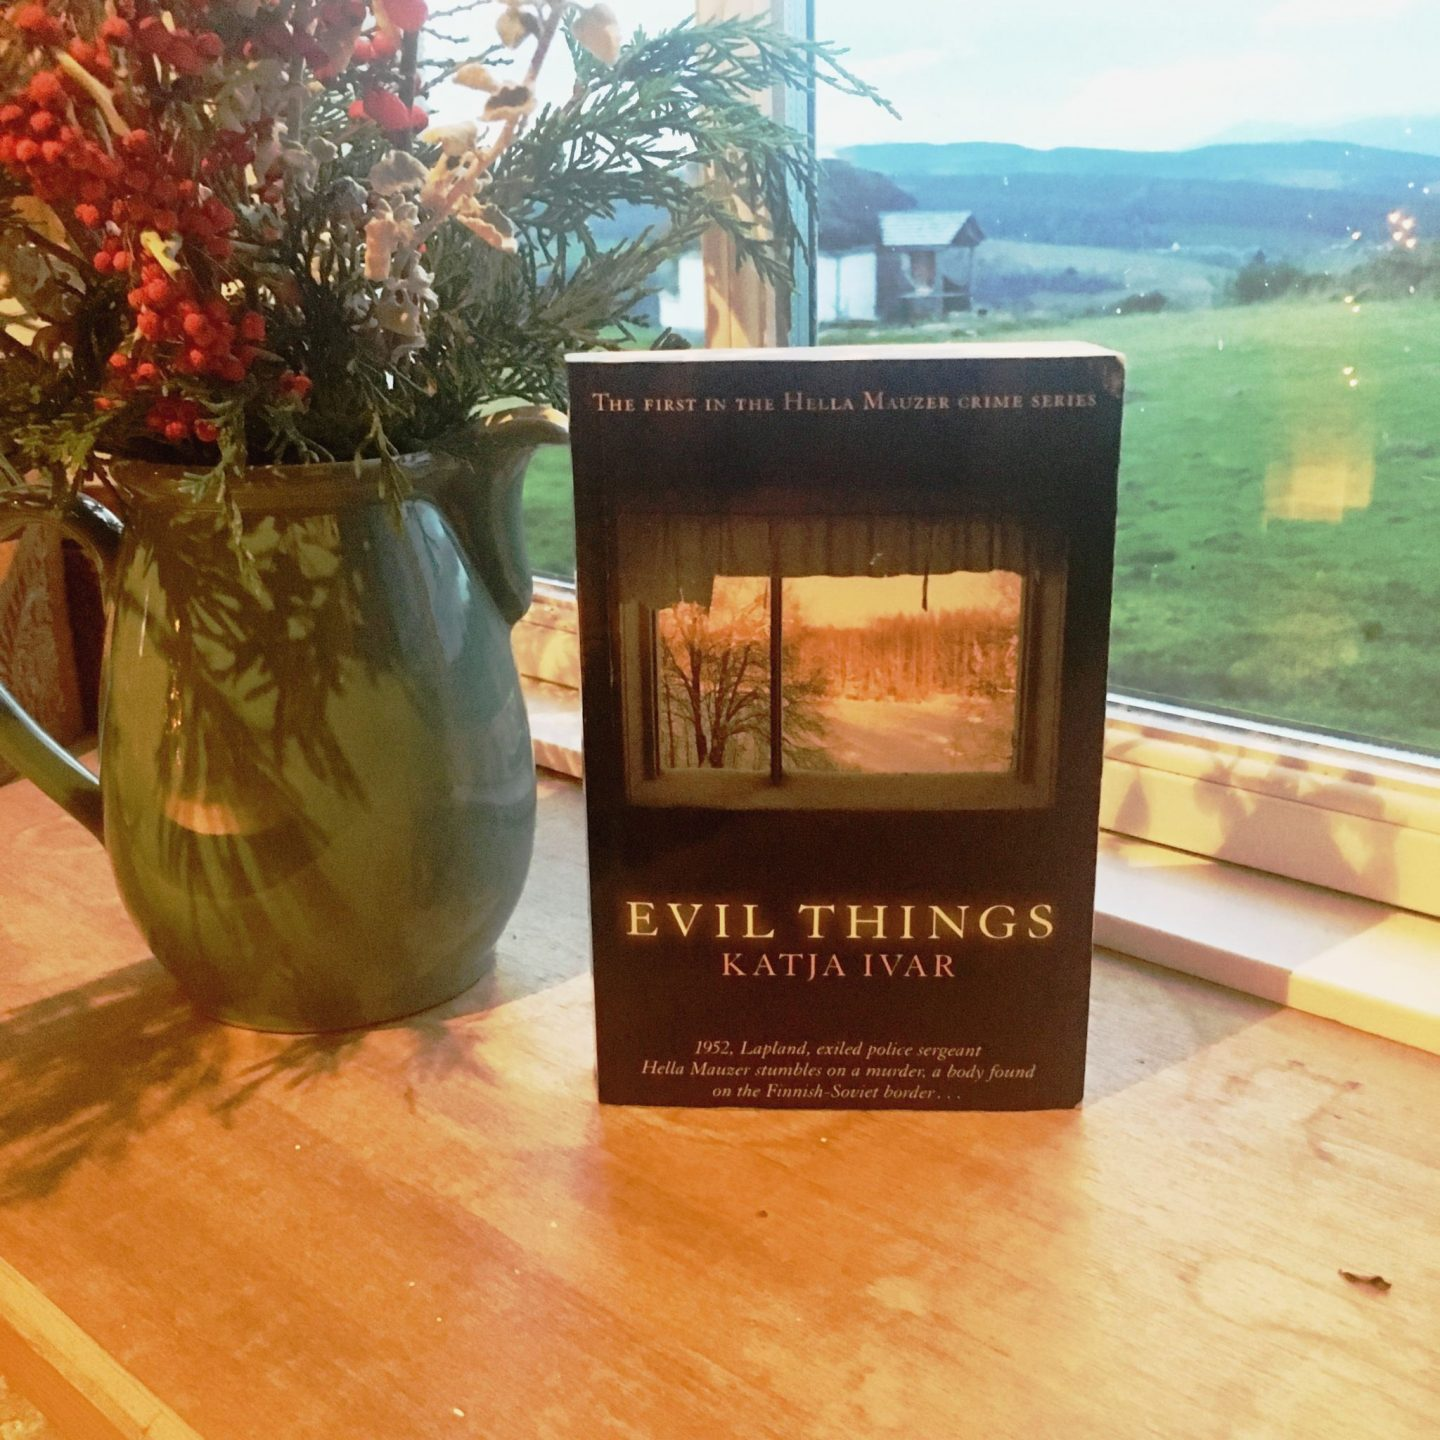 Evil Things; a new Nordic thriller